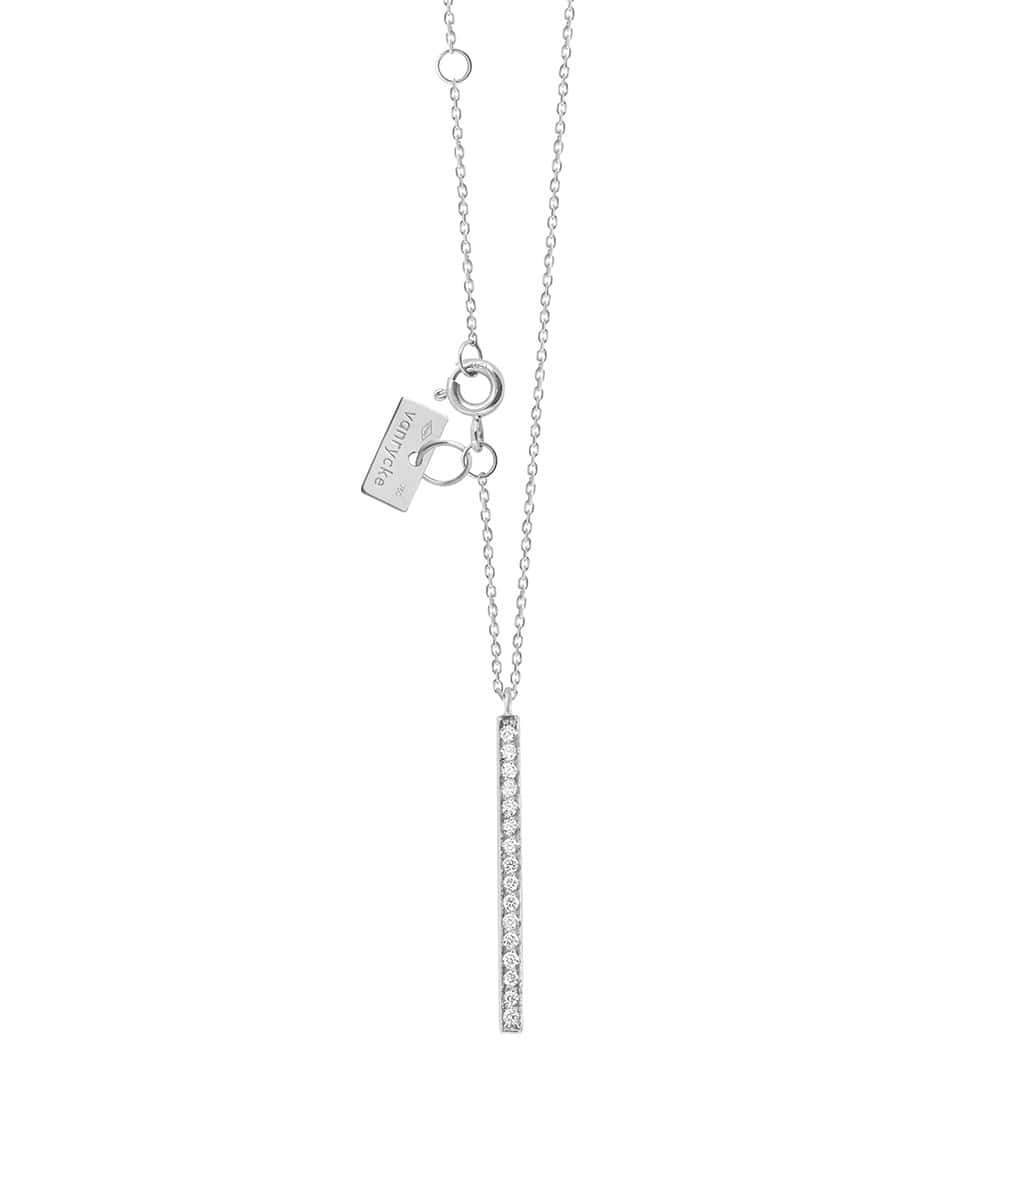 VANRYCKE - Collier Medellin Or Blanc Diamants